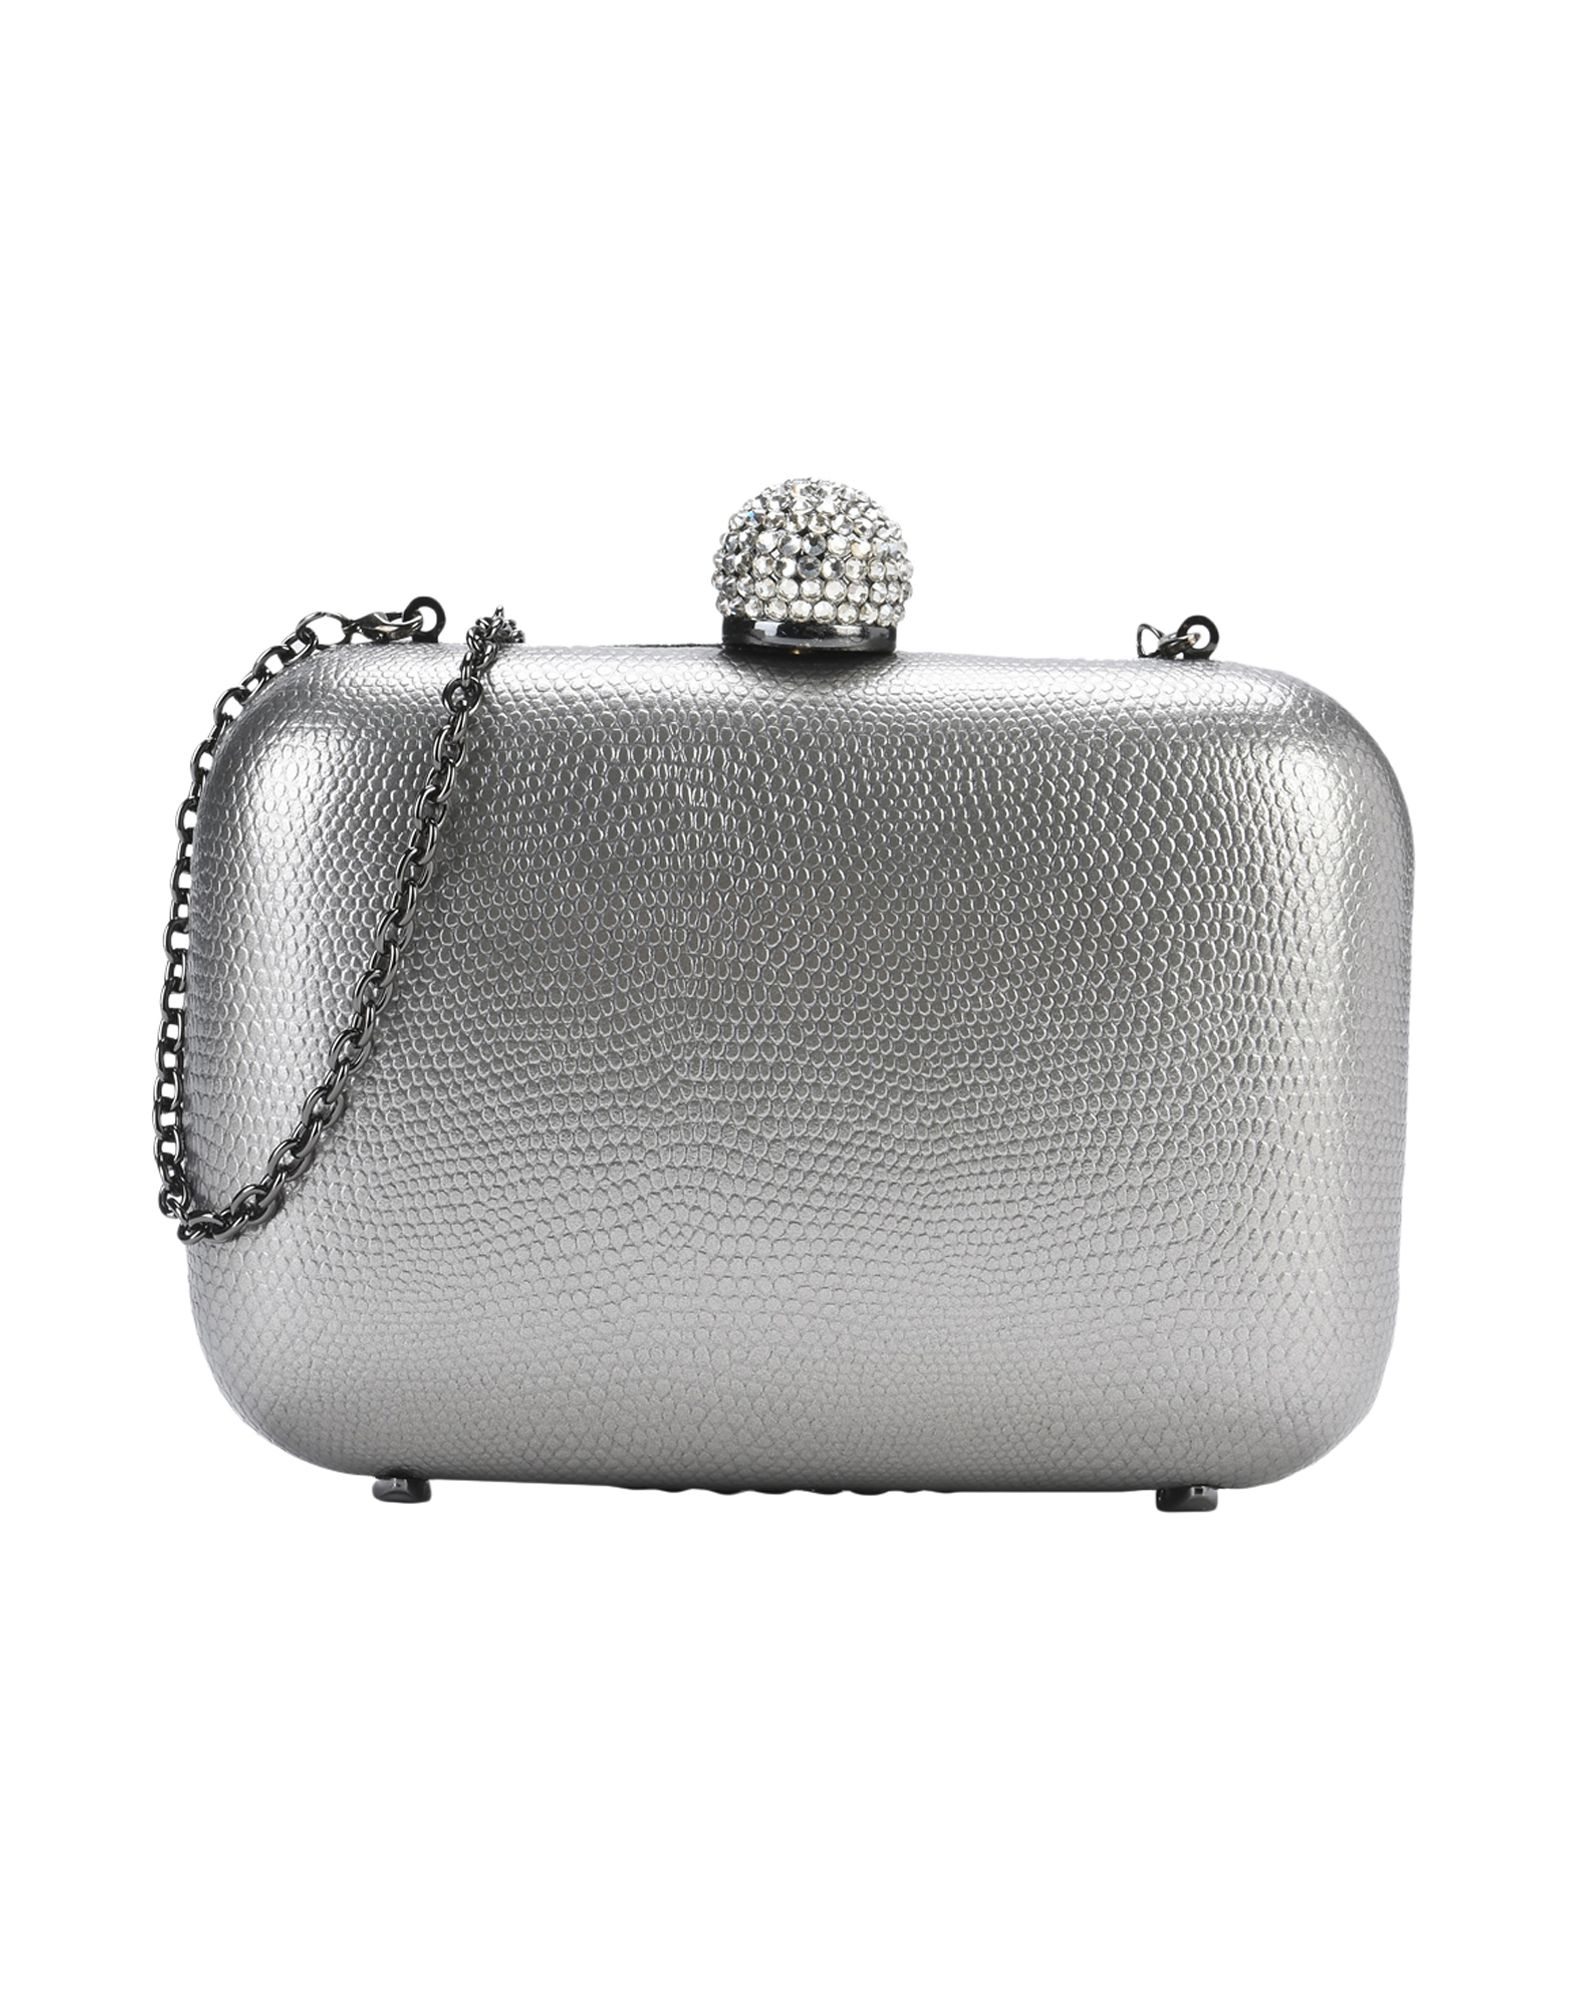 INGE CHRISTOPHER Handbag in Lead